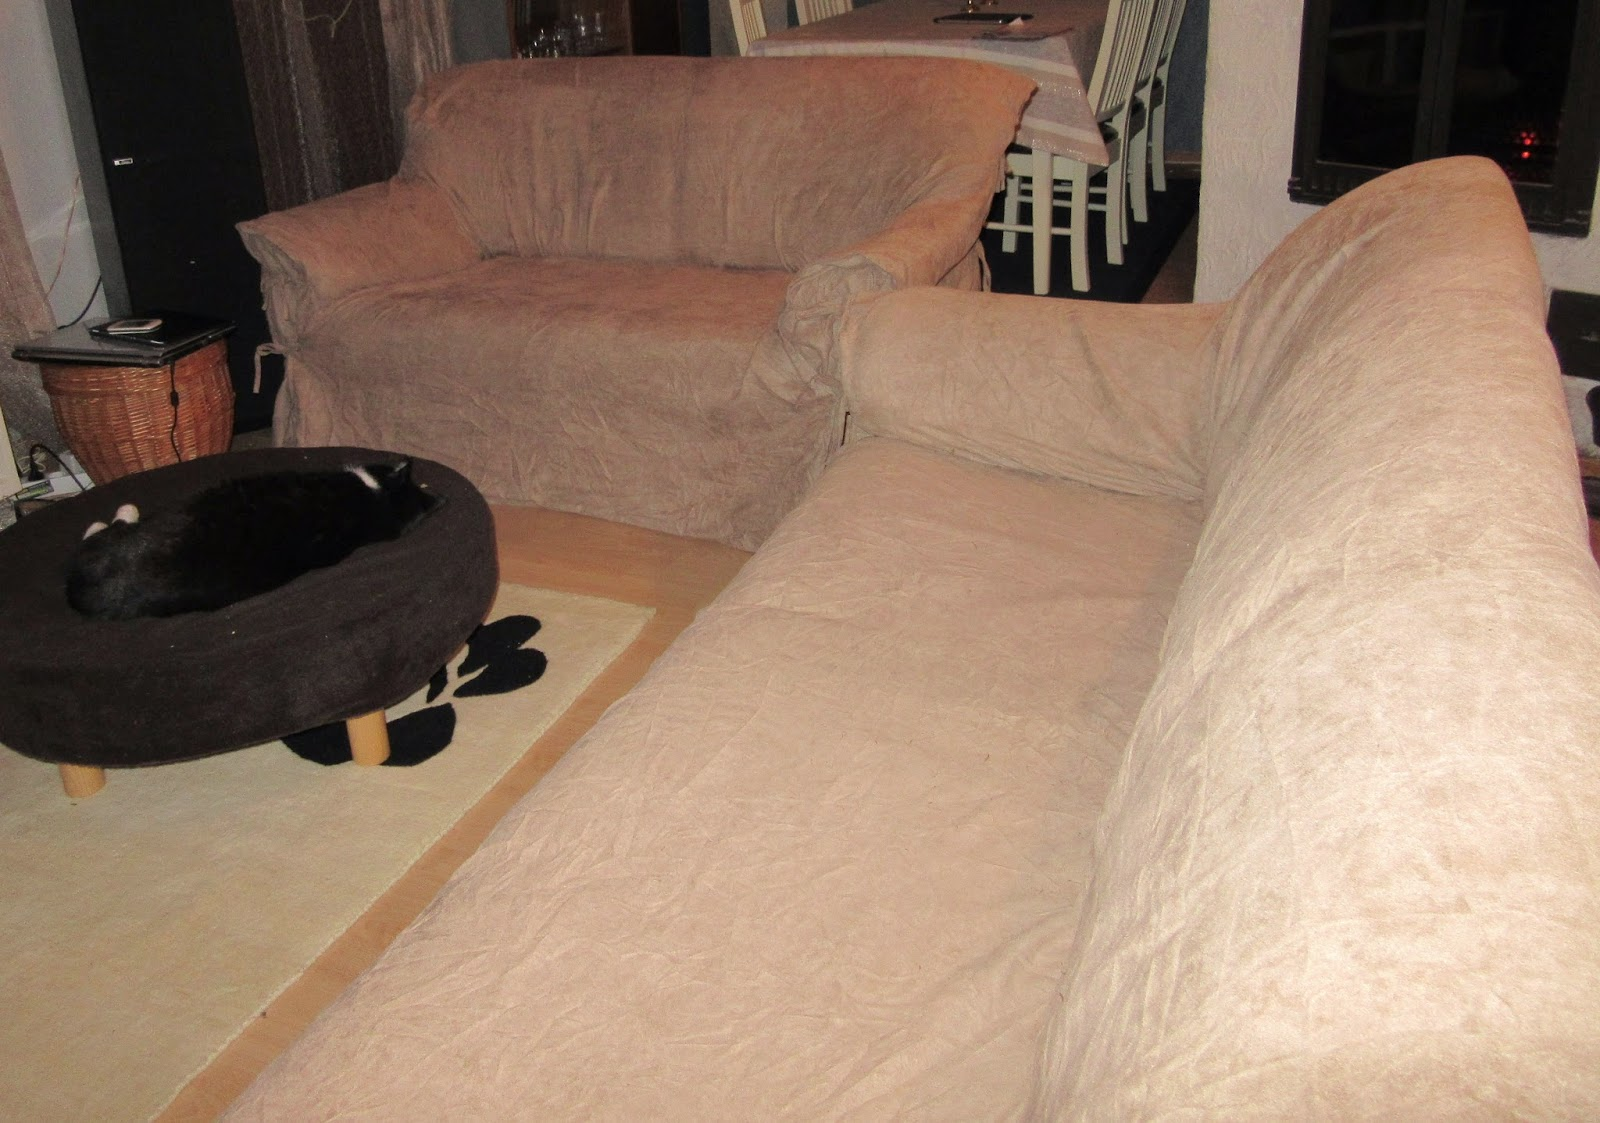 Light brown covers on sofas